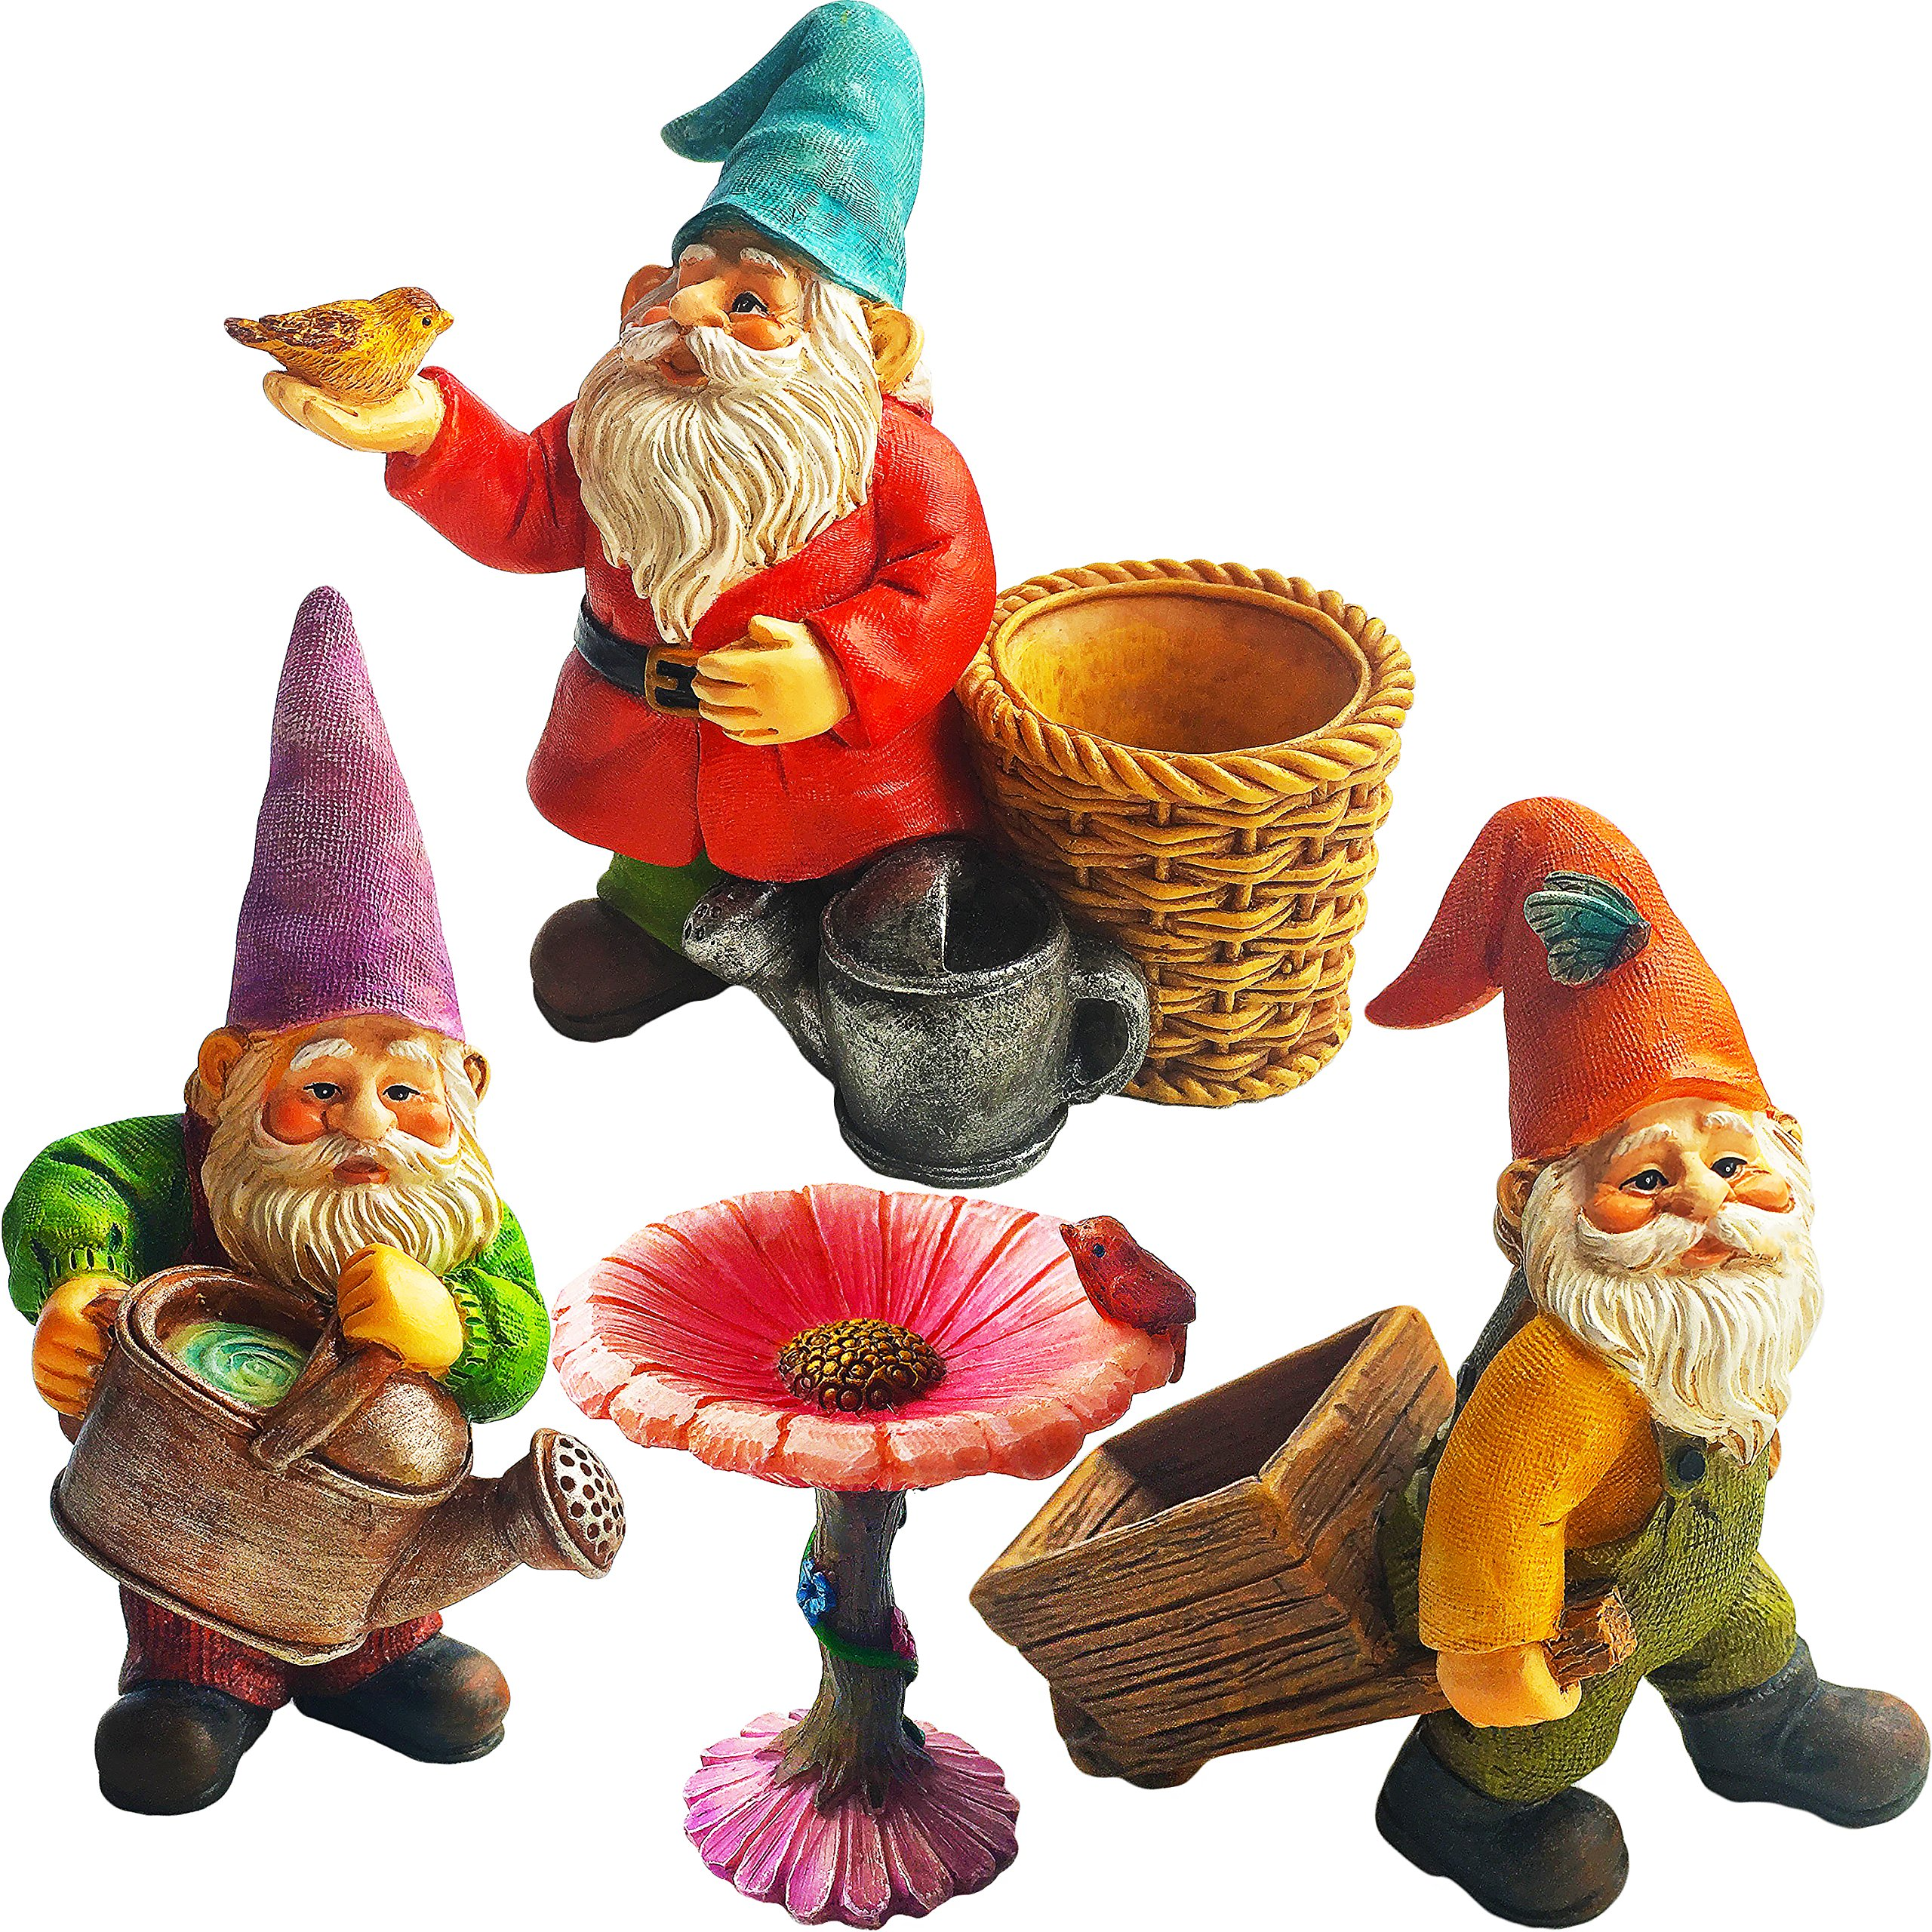 Mood Lab Miniature Gardening Gnomes Set of 4 pcs - 3,1''-3,7'' Height Gnome Figurines & Accessories - Kit Outdoor House Decor